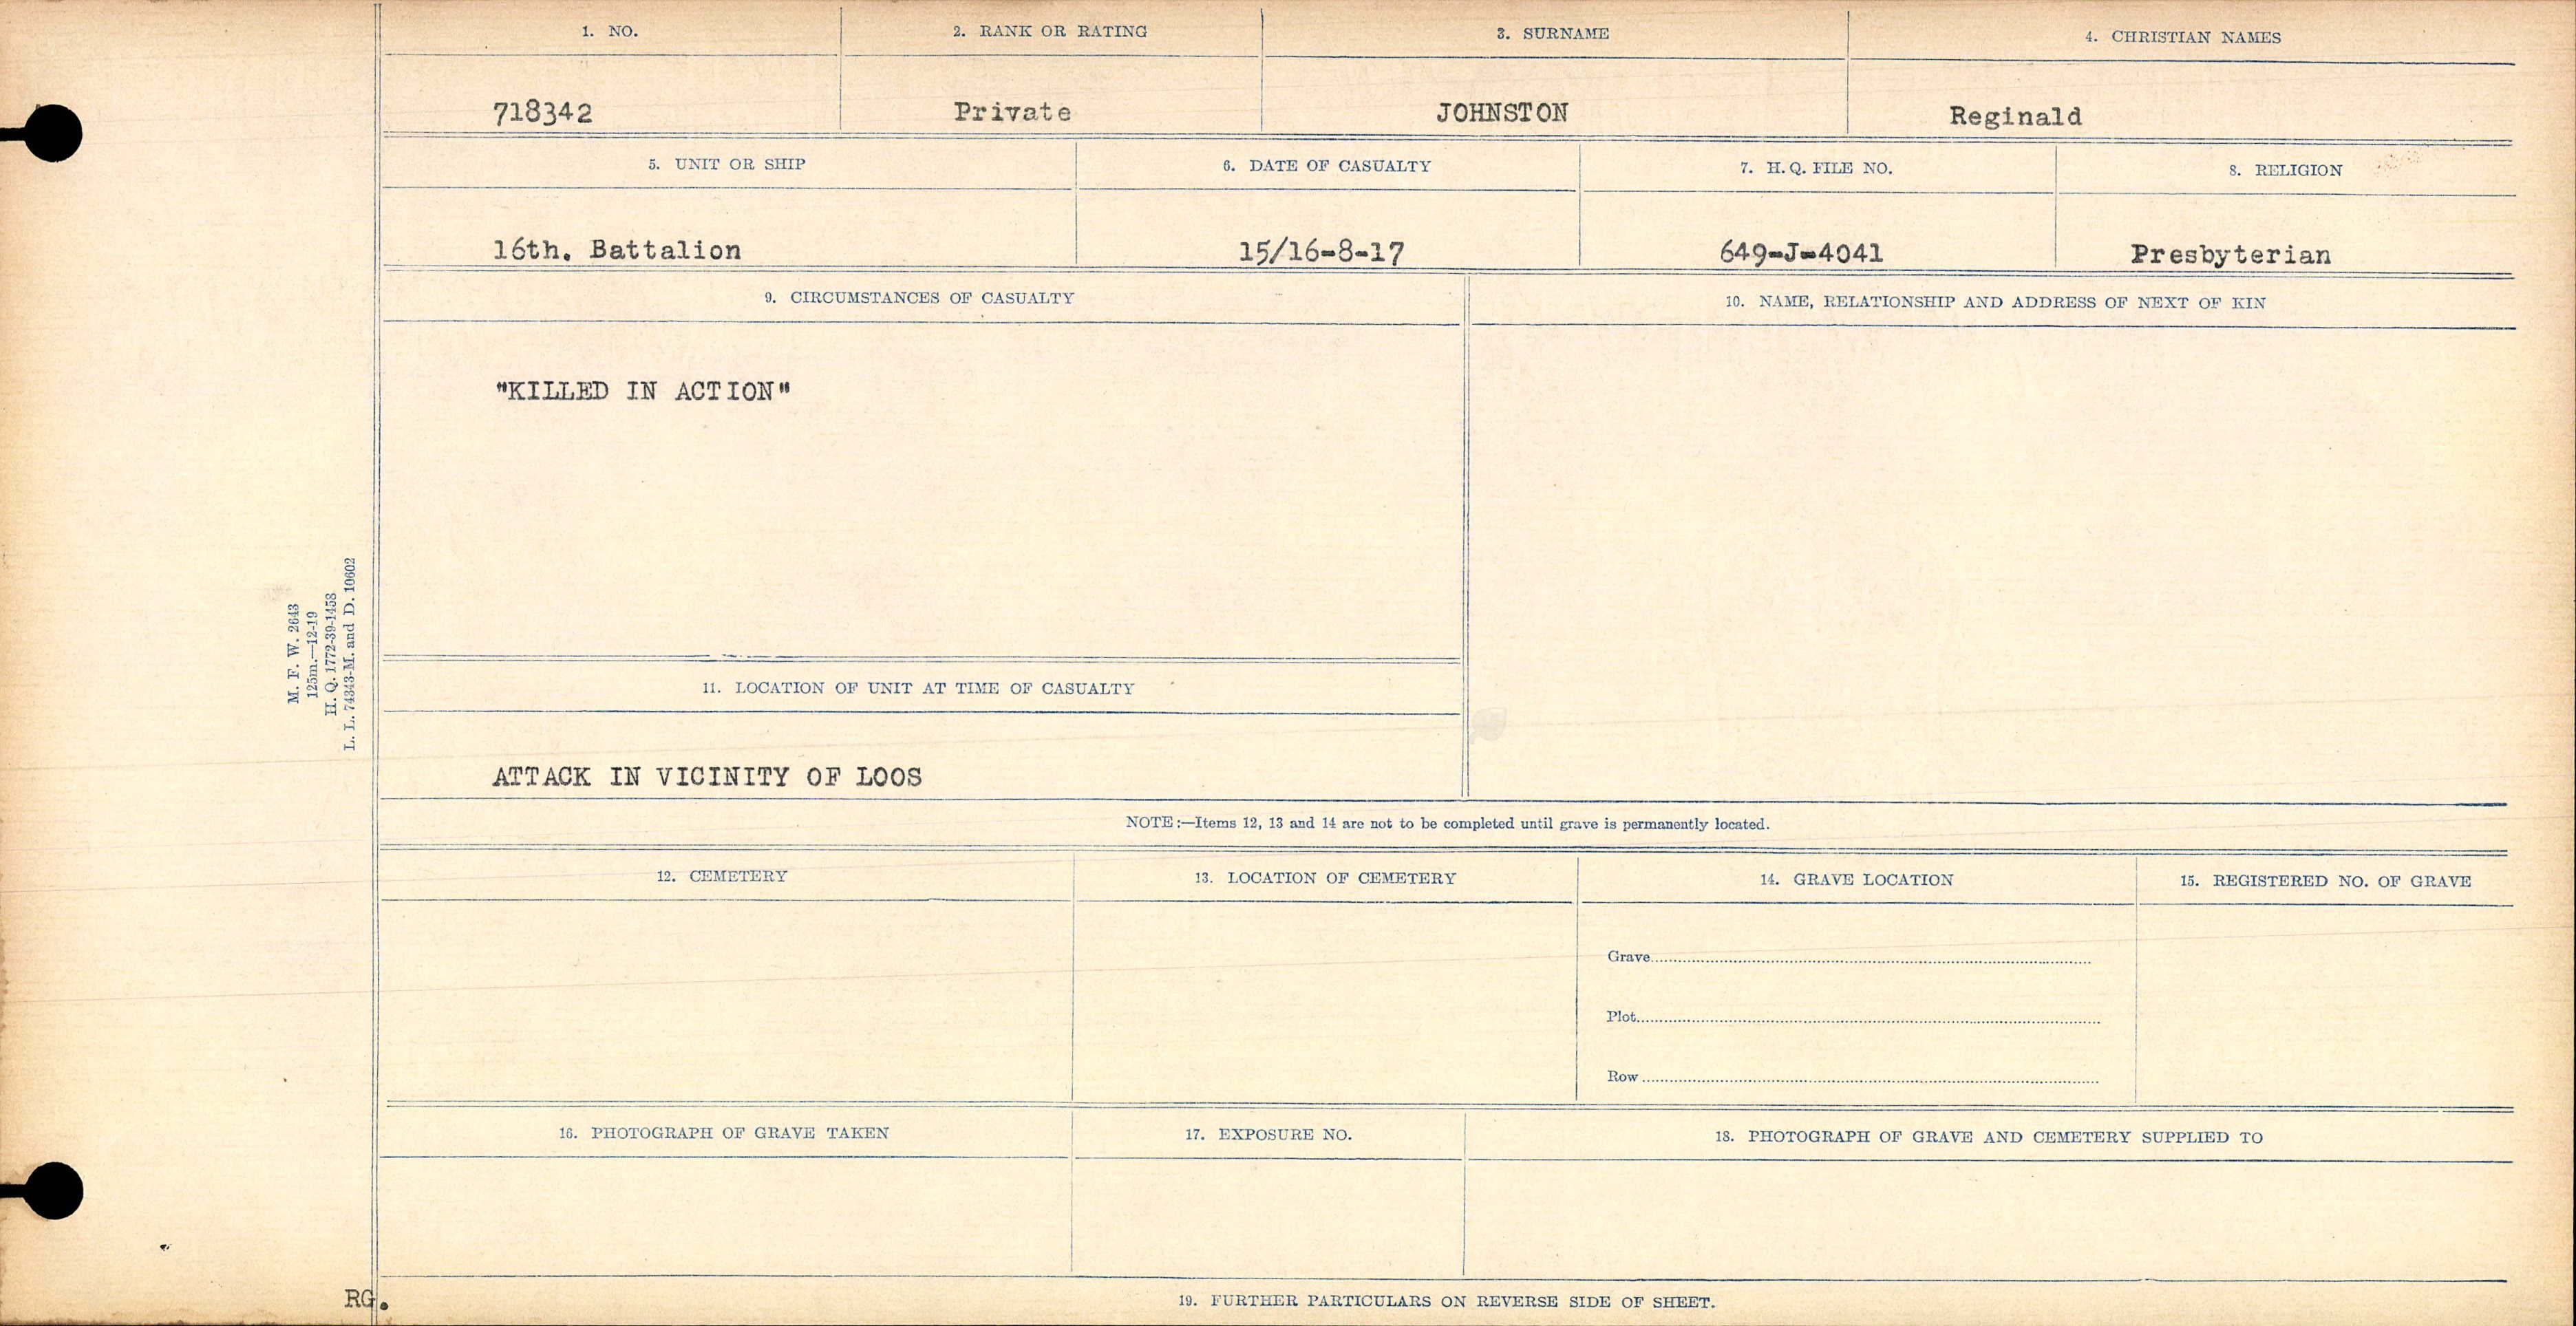 Circumstances of Death Registers – The Circumstance of Death file for Private Reginald Johnston shows that he was killed in action during the attack in the vicinity of Loos on the 15th or 16th of August 1917.